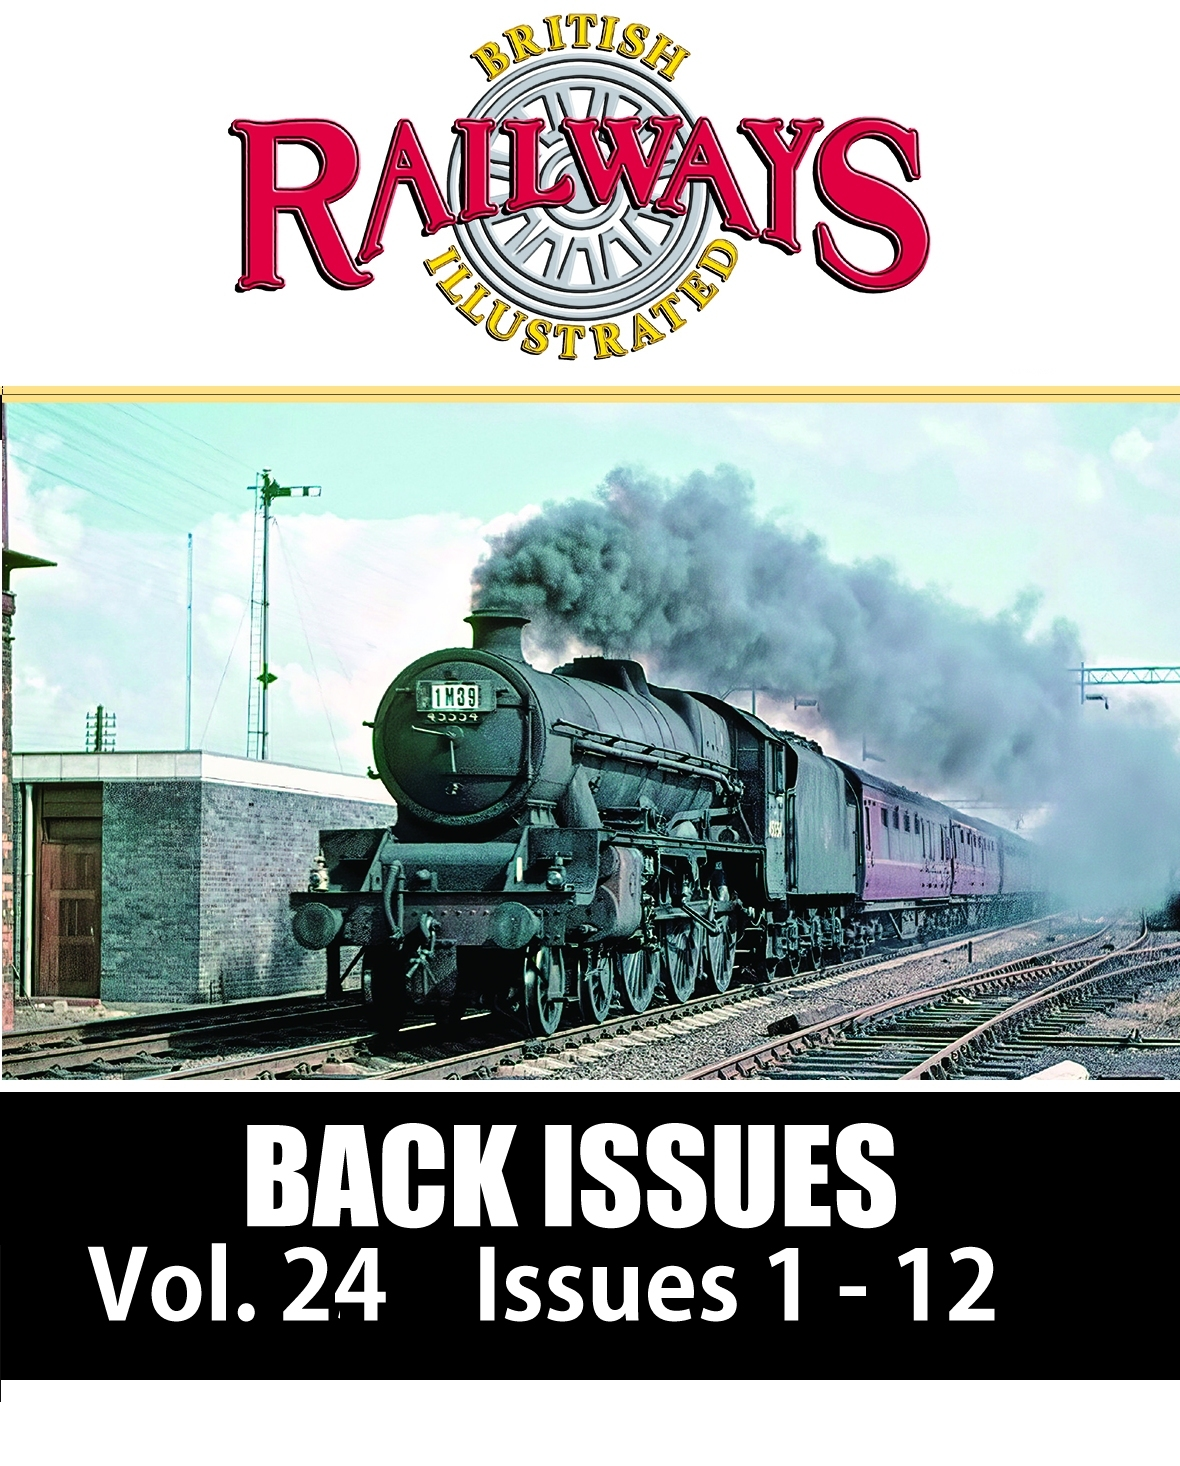 Guideline Publications British Railways Illustrated - BACK ISSUES vol 24